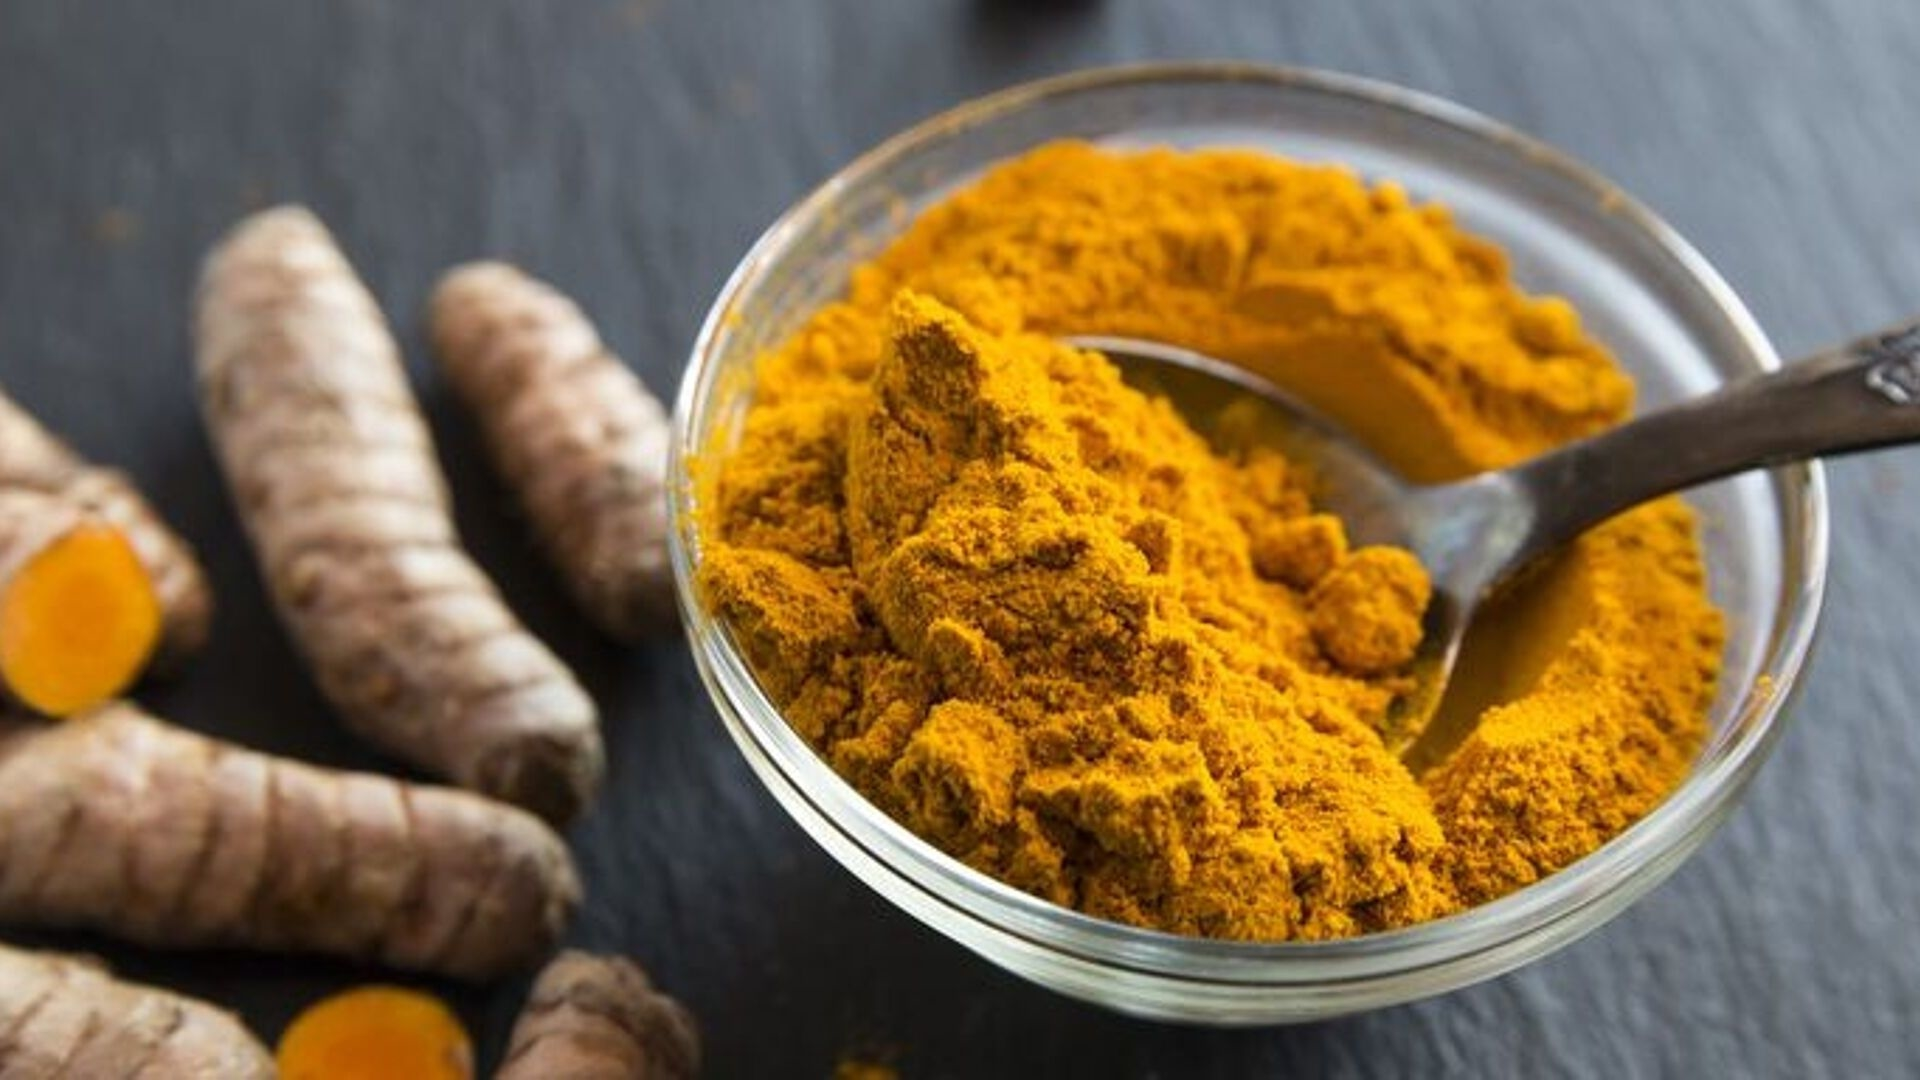 How To Make Your Own Turmeric And Honey Face Mask